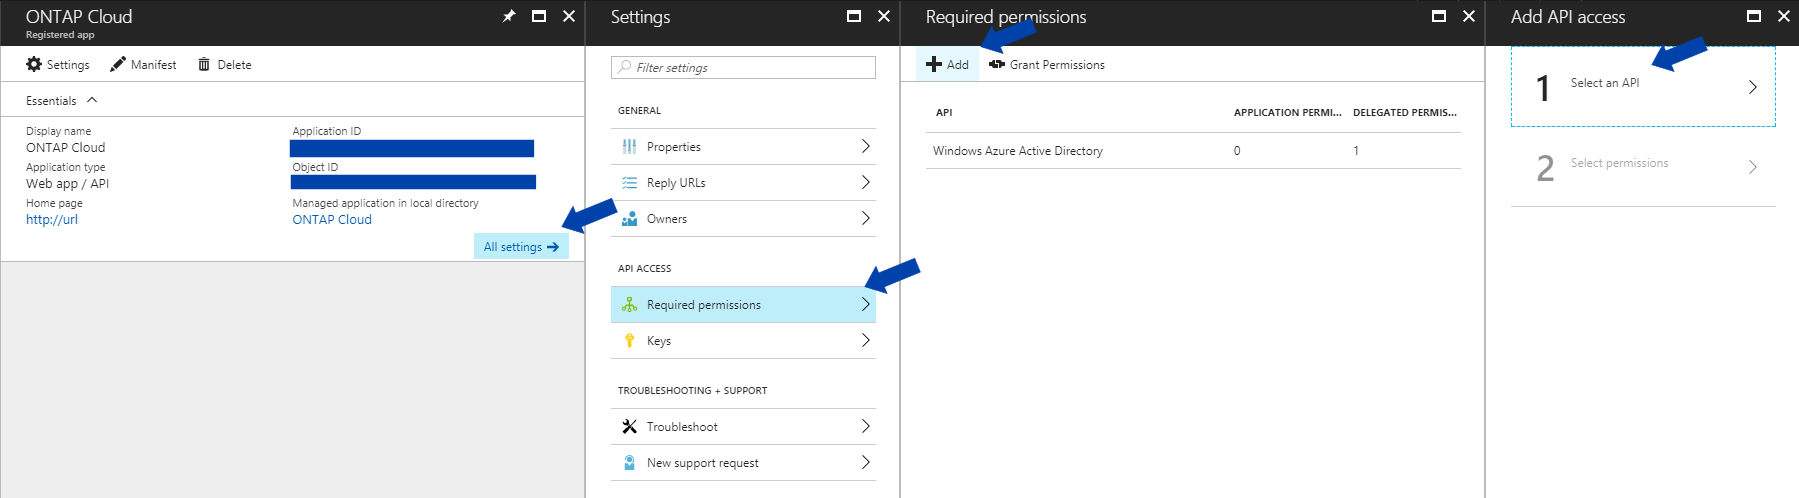 NetApp ONTAP Cloud in Azure – Full Deployment Guide